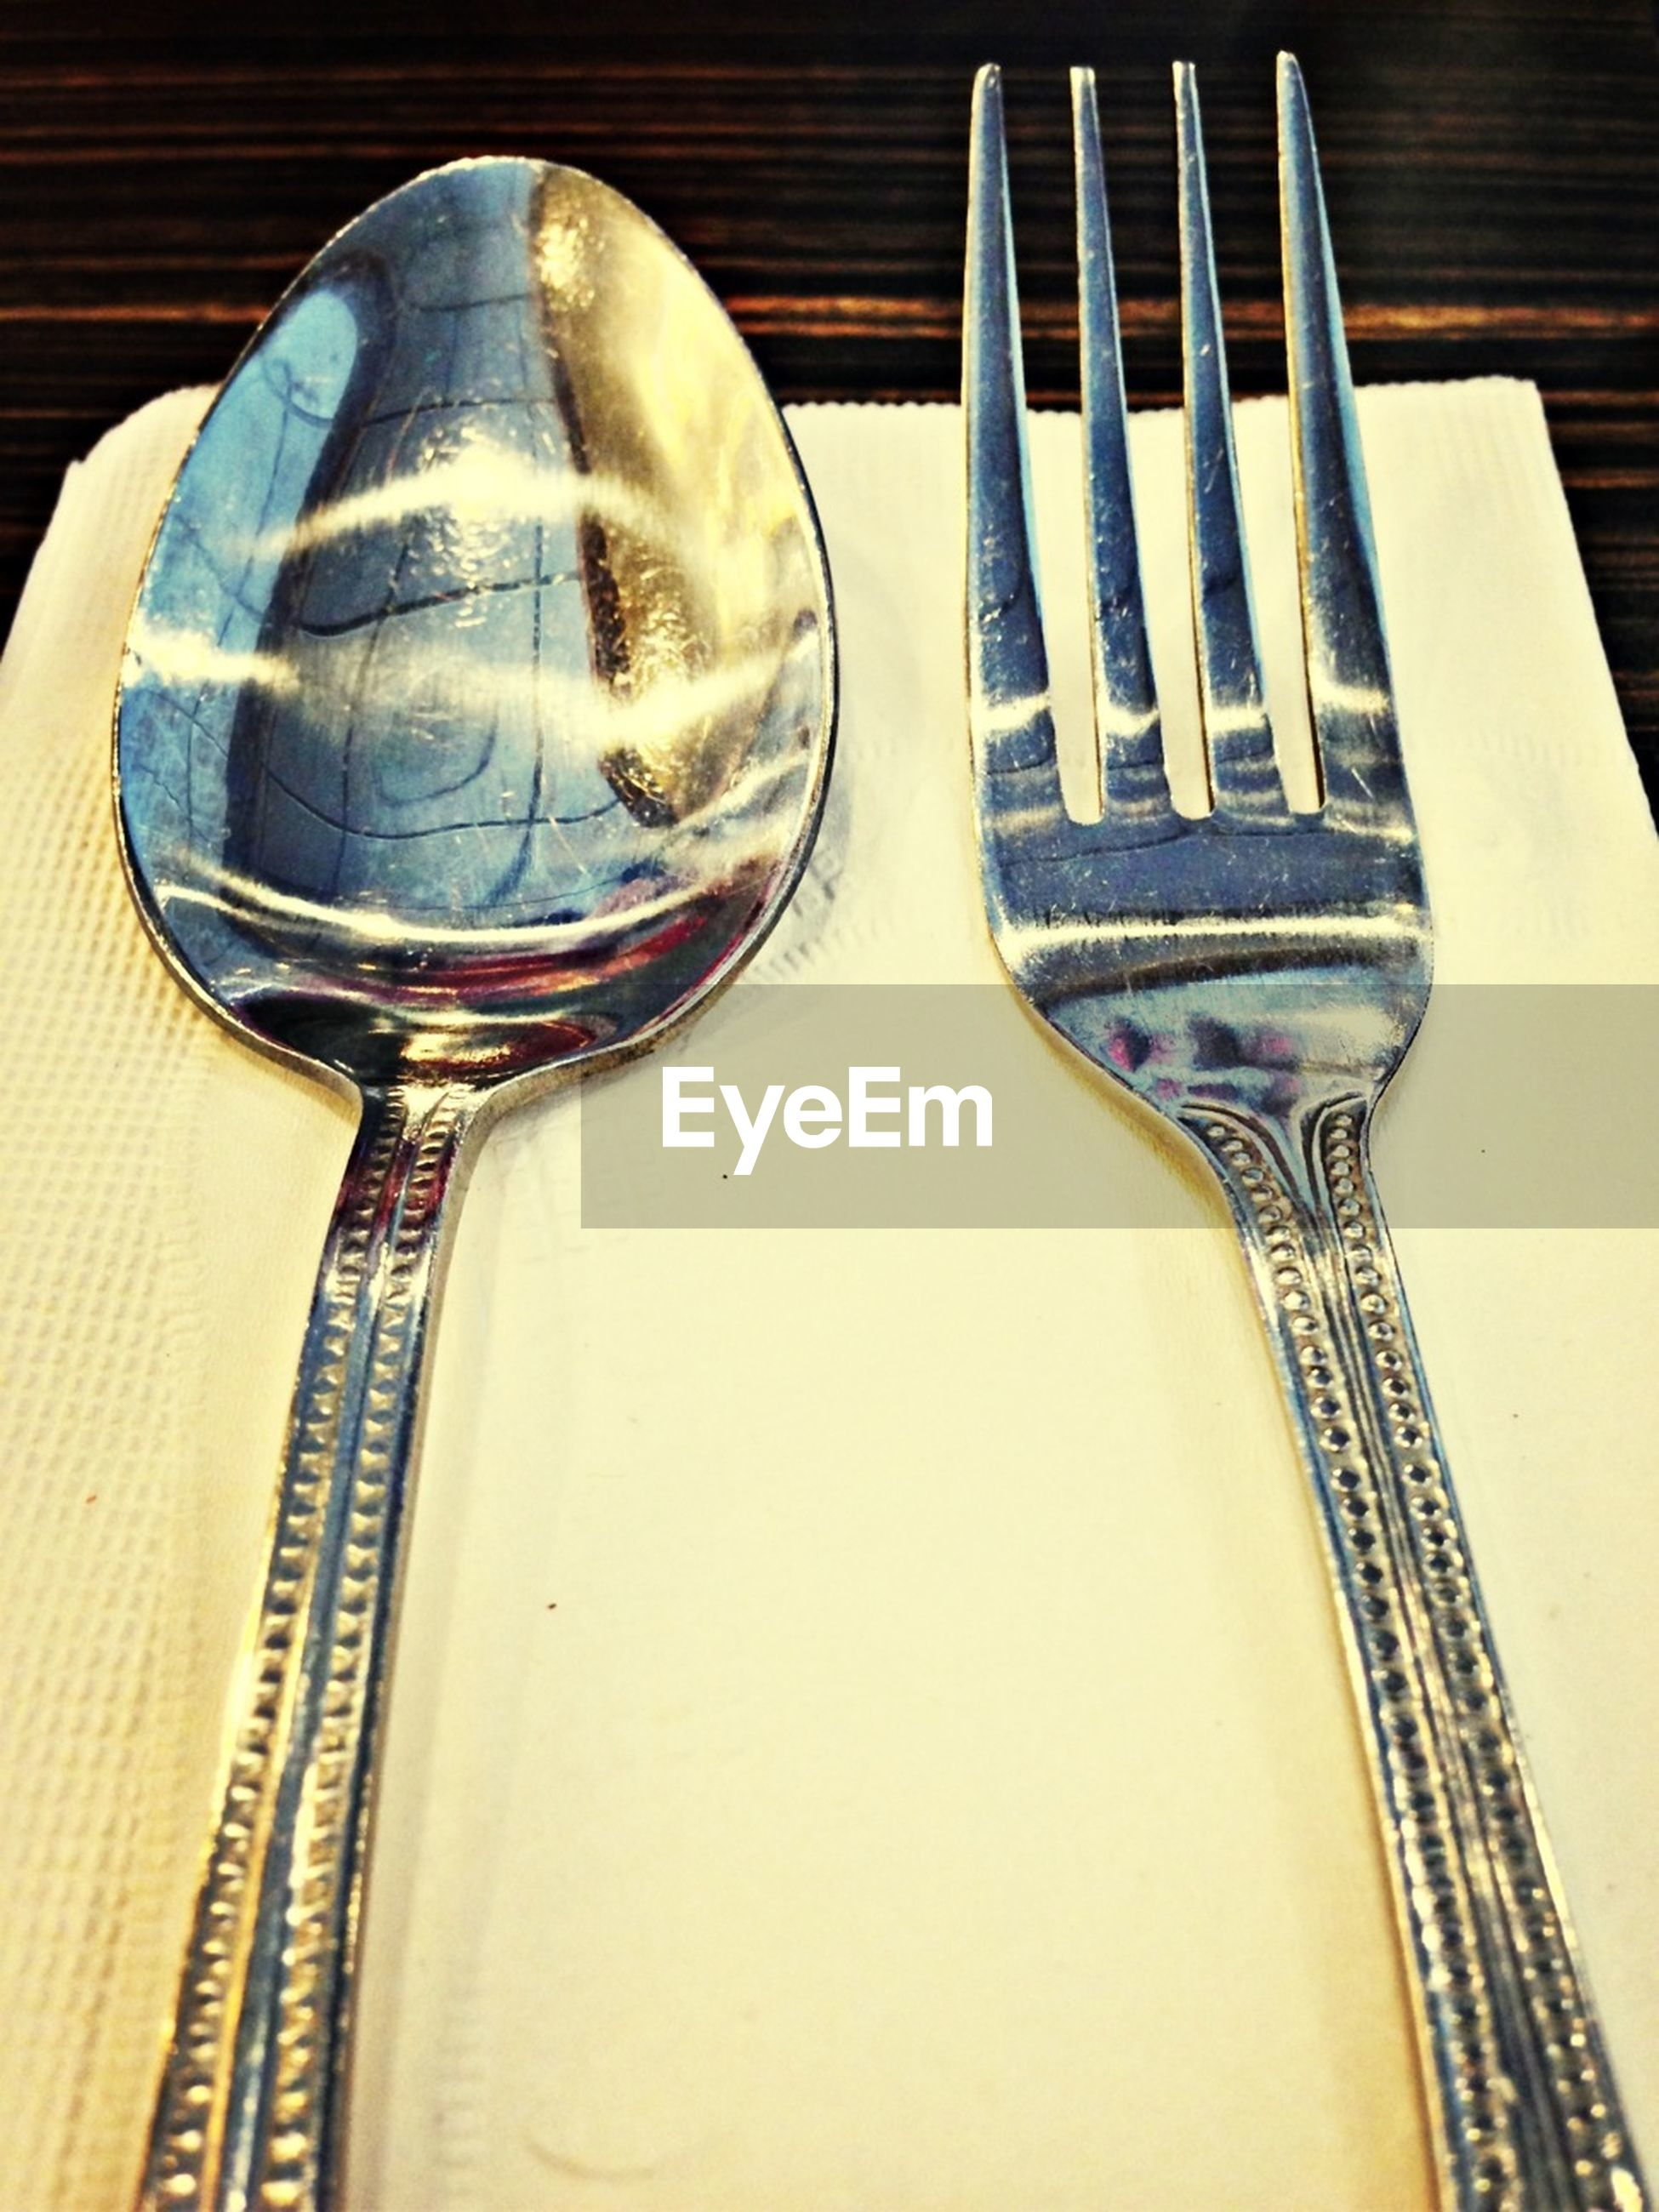 Close-up of silverware on napkin